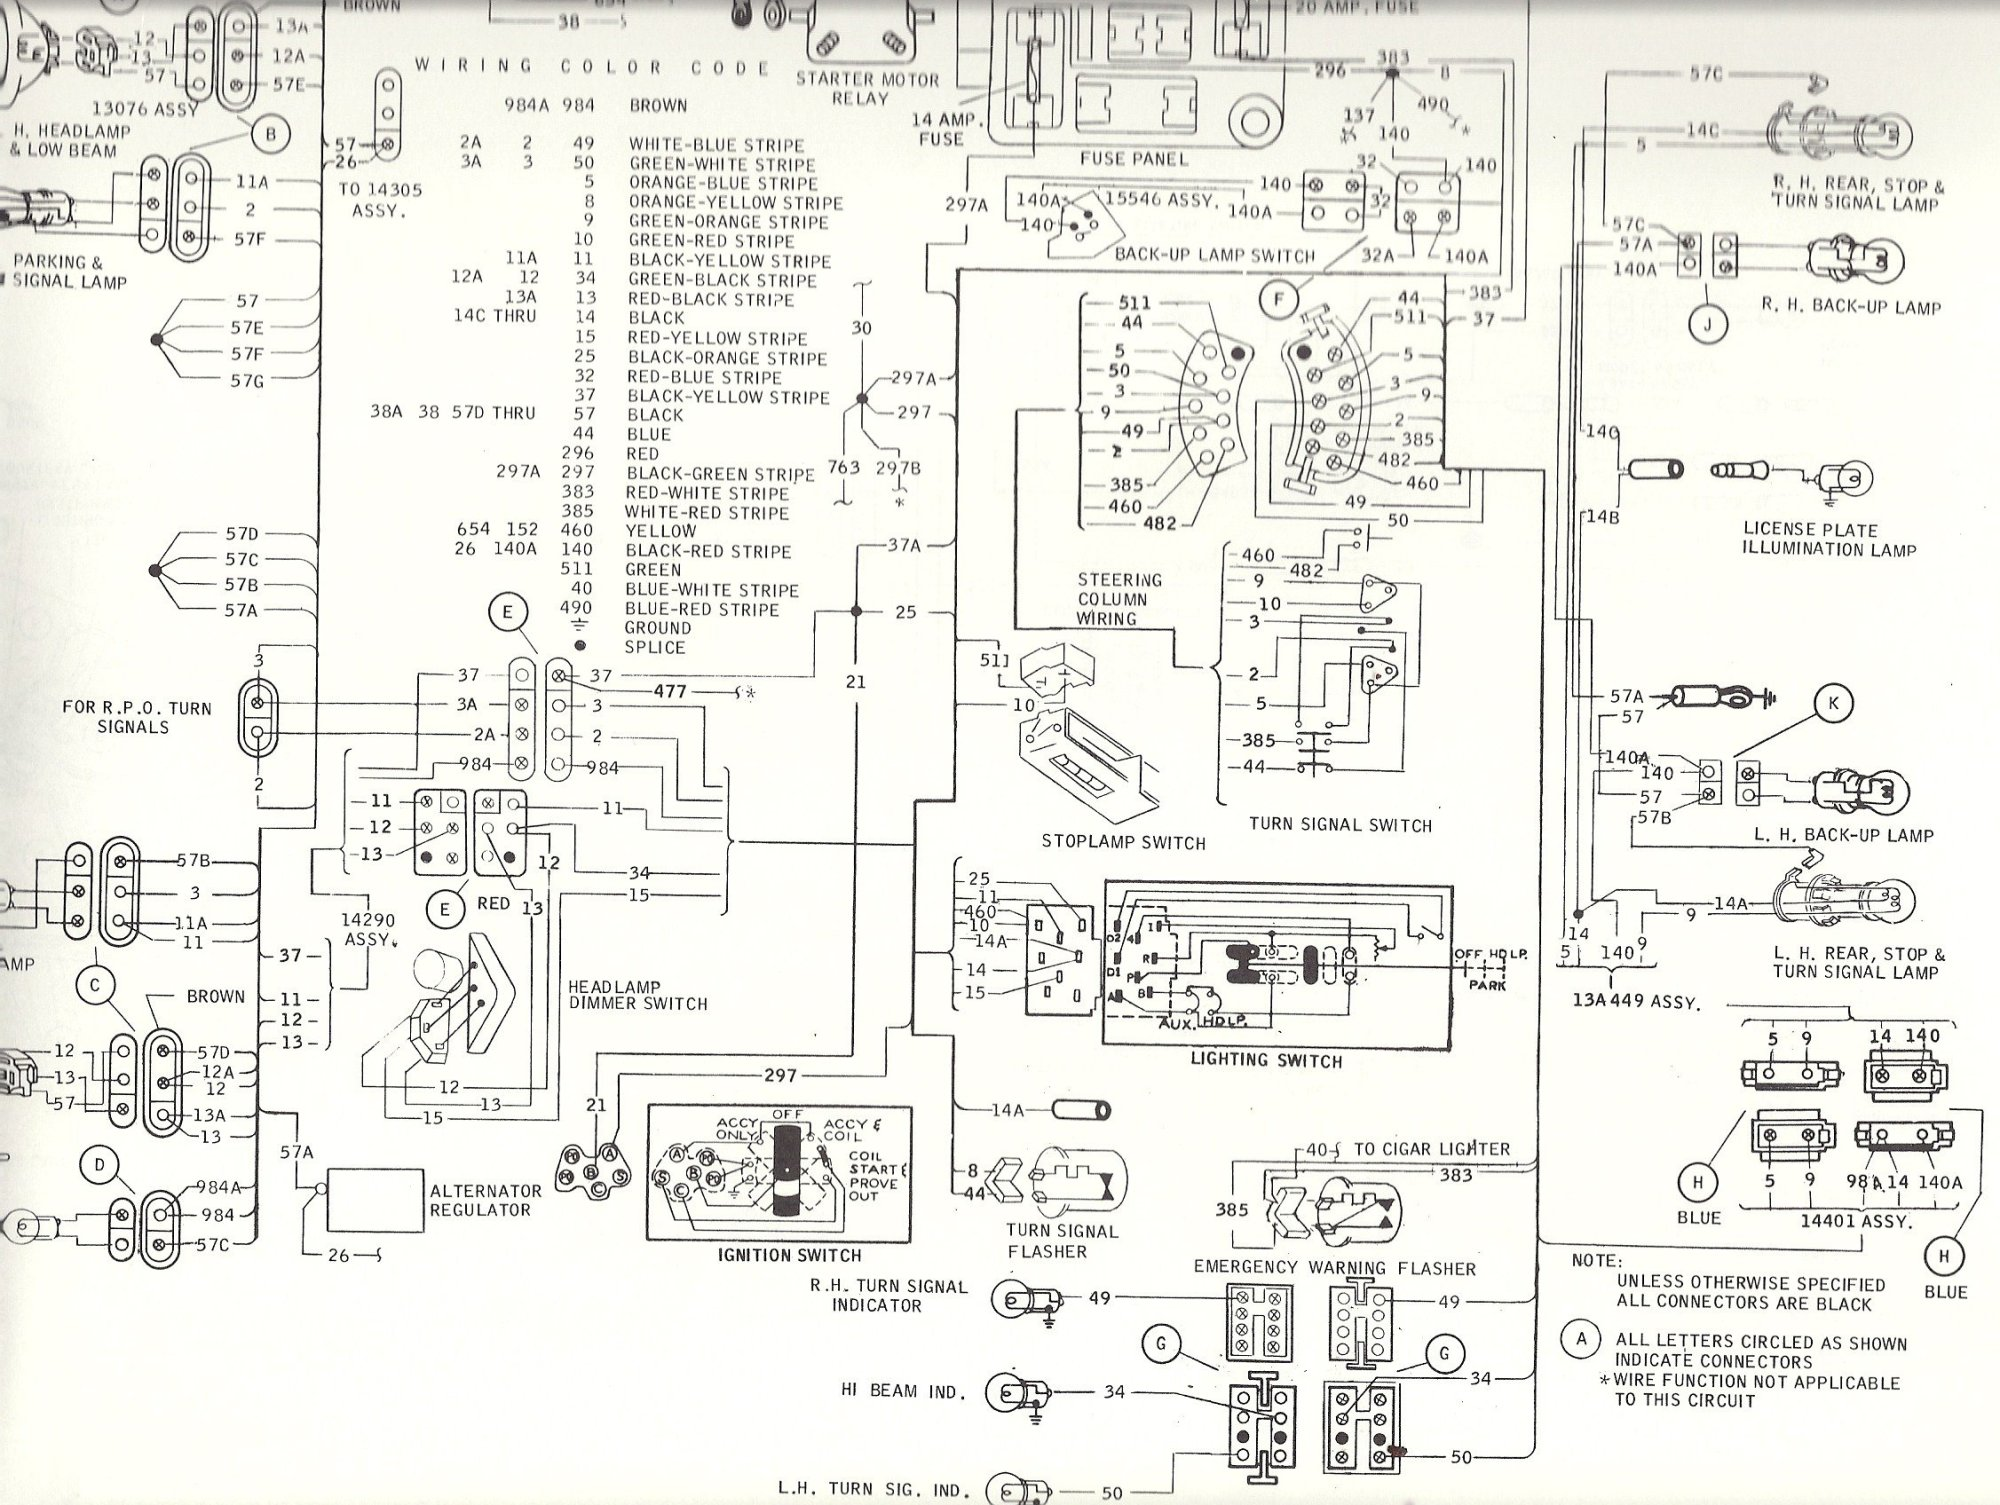 hight resolution of 66 mustang turn signal diagram wiring schematic wiring diagram 64 mustang turn signal wiring diagram